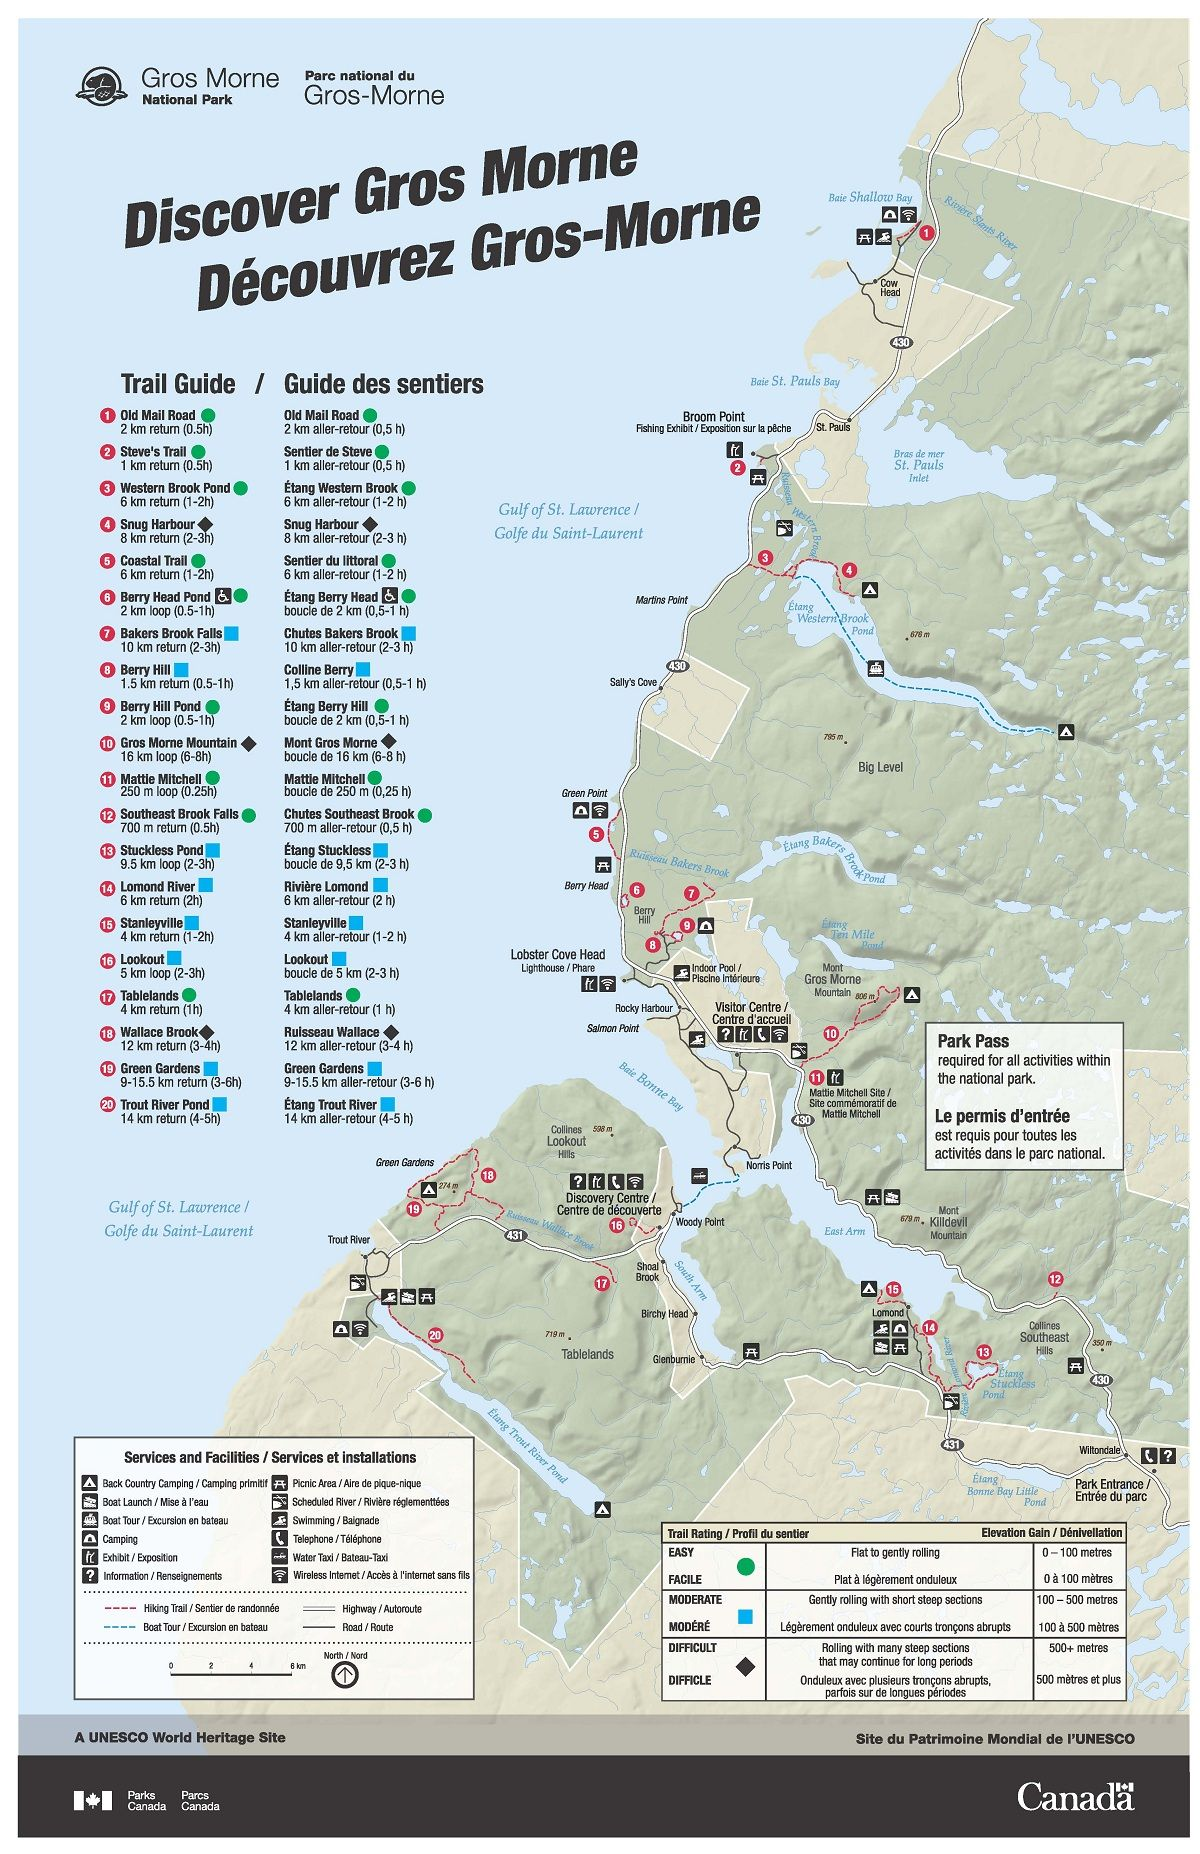 Parks canada gros morne national park map canada pinterest parks canada gros morne national park map gumiabroncs Images